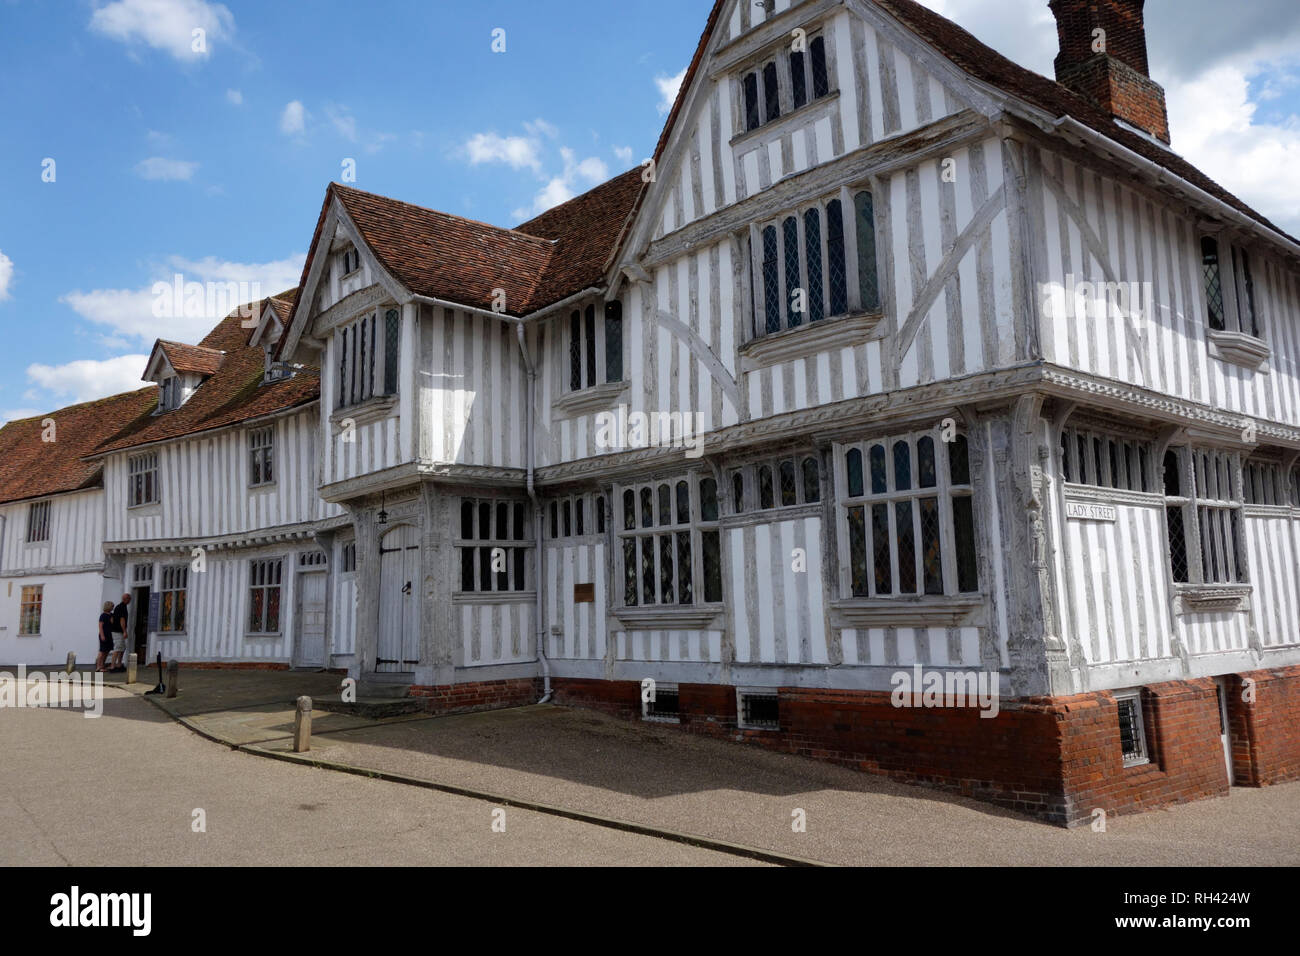 Lavenham Guildhall, Suffolk - Stock Image